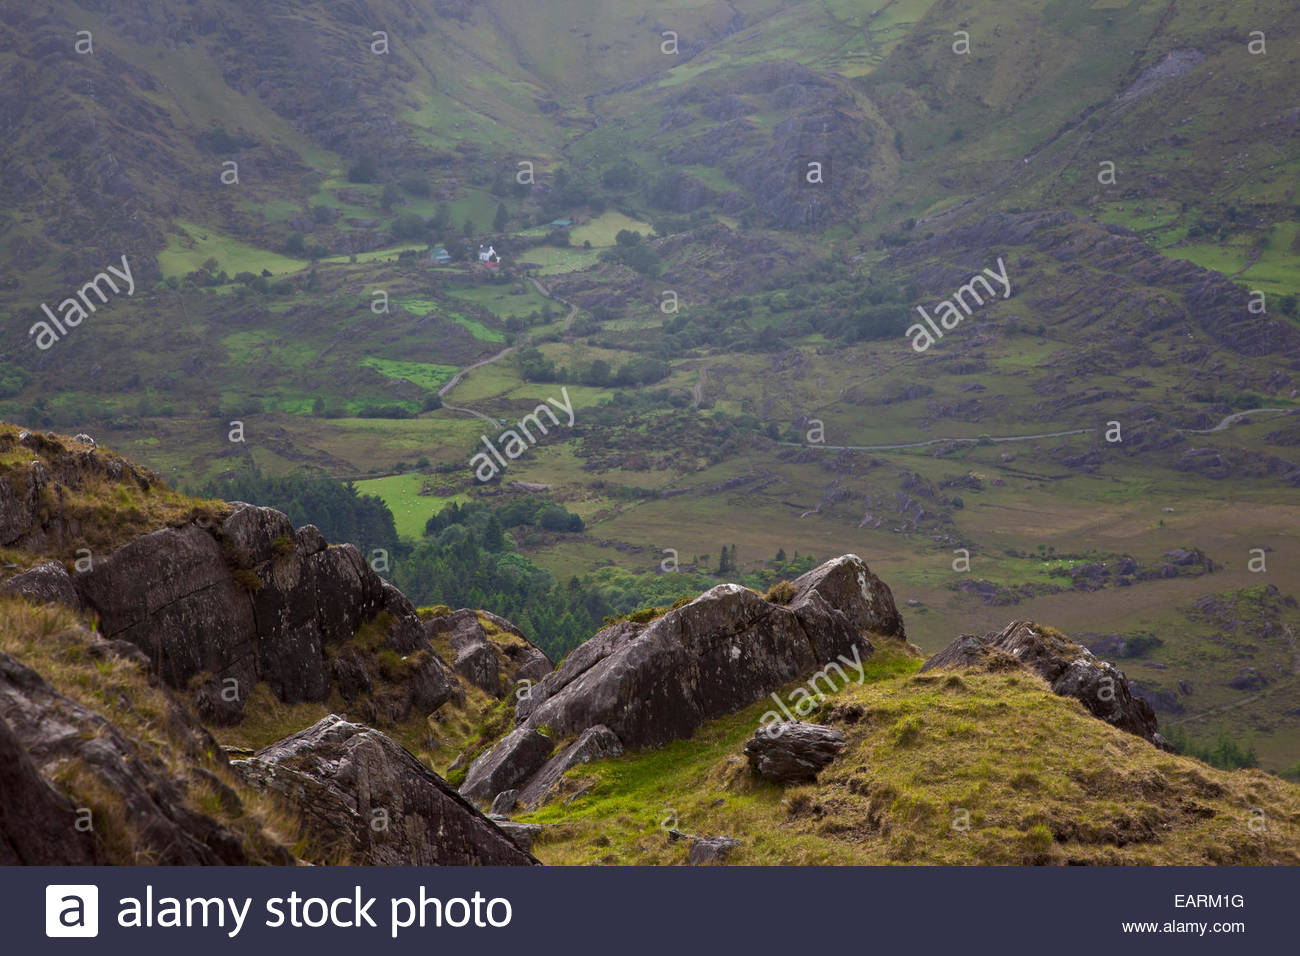 Healy Pass on the Beara Peninsula offers some spectacular scenery. - Stock Image